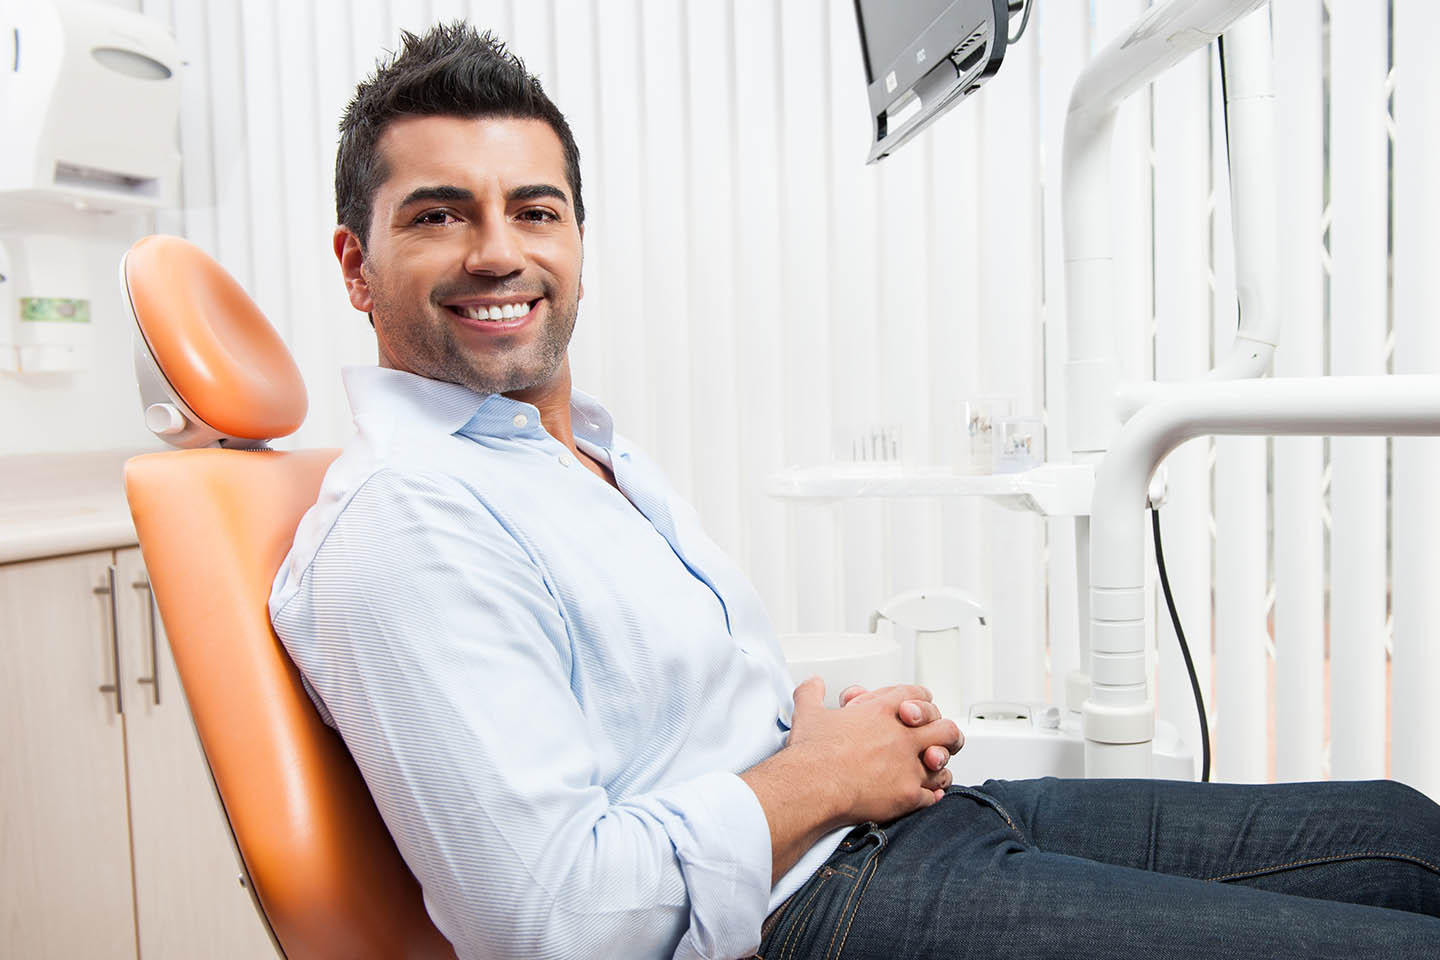 Patient smiling in examination chair